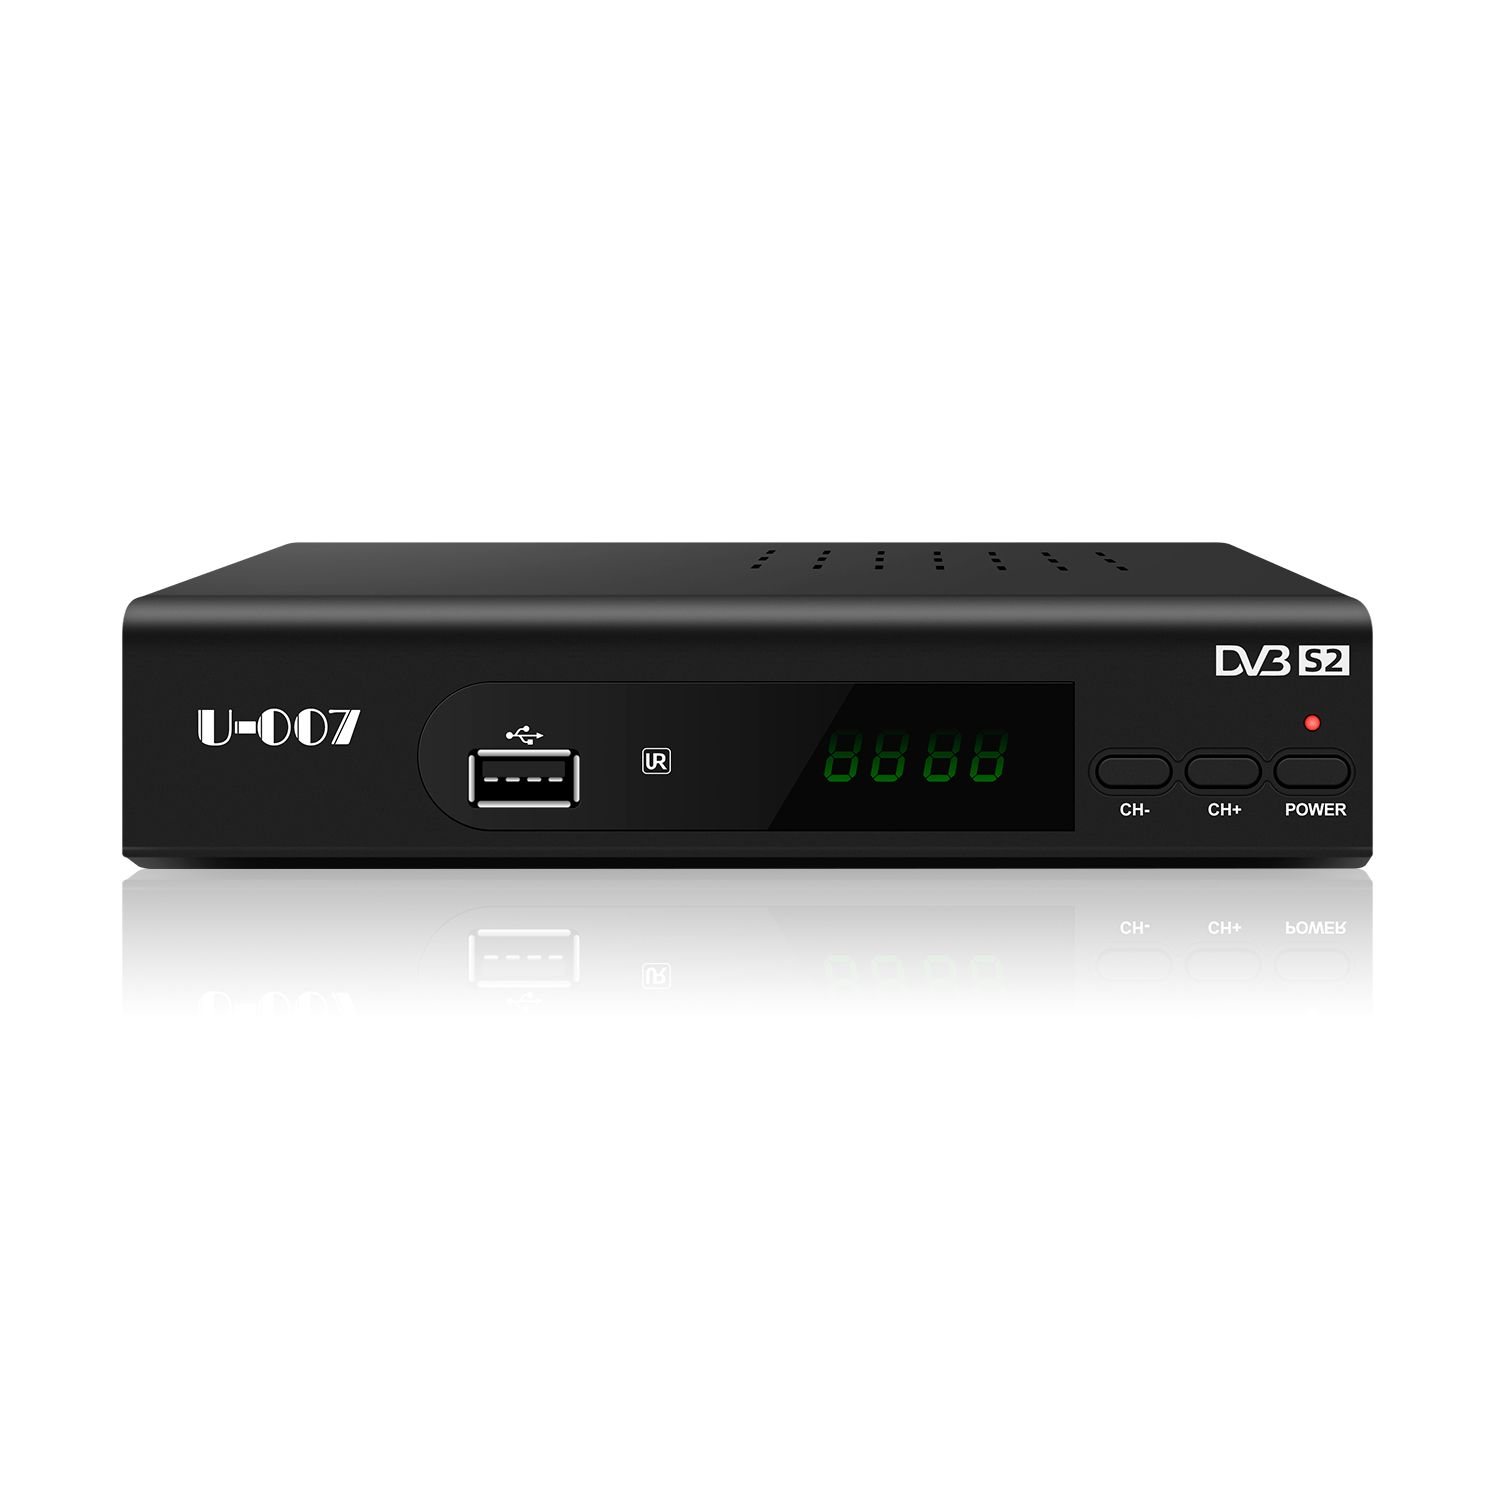 JUNUO full hd free channal digital satellite receiver no dish?imageView2/1/w/400/h/300/q/80